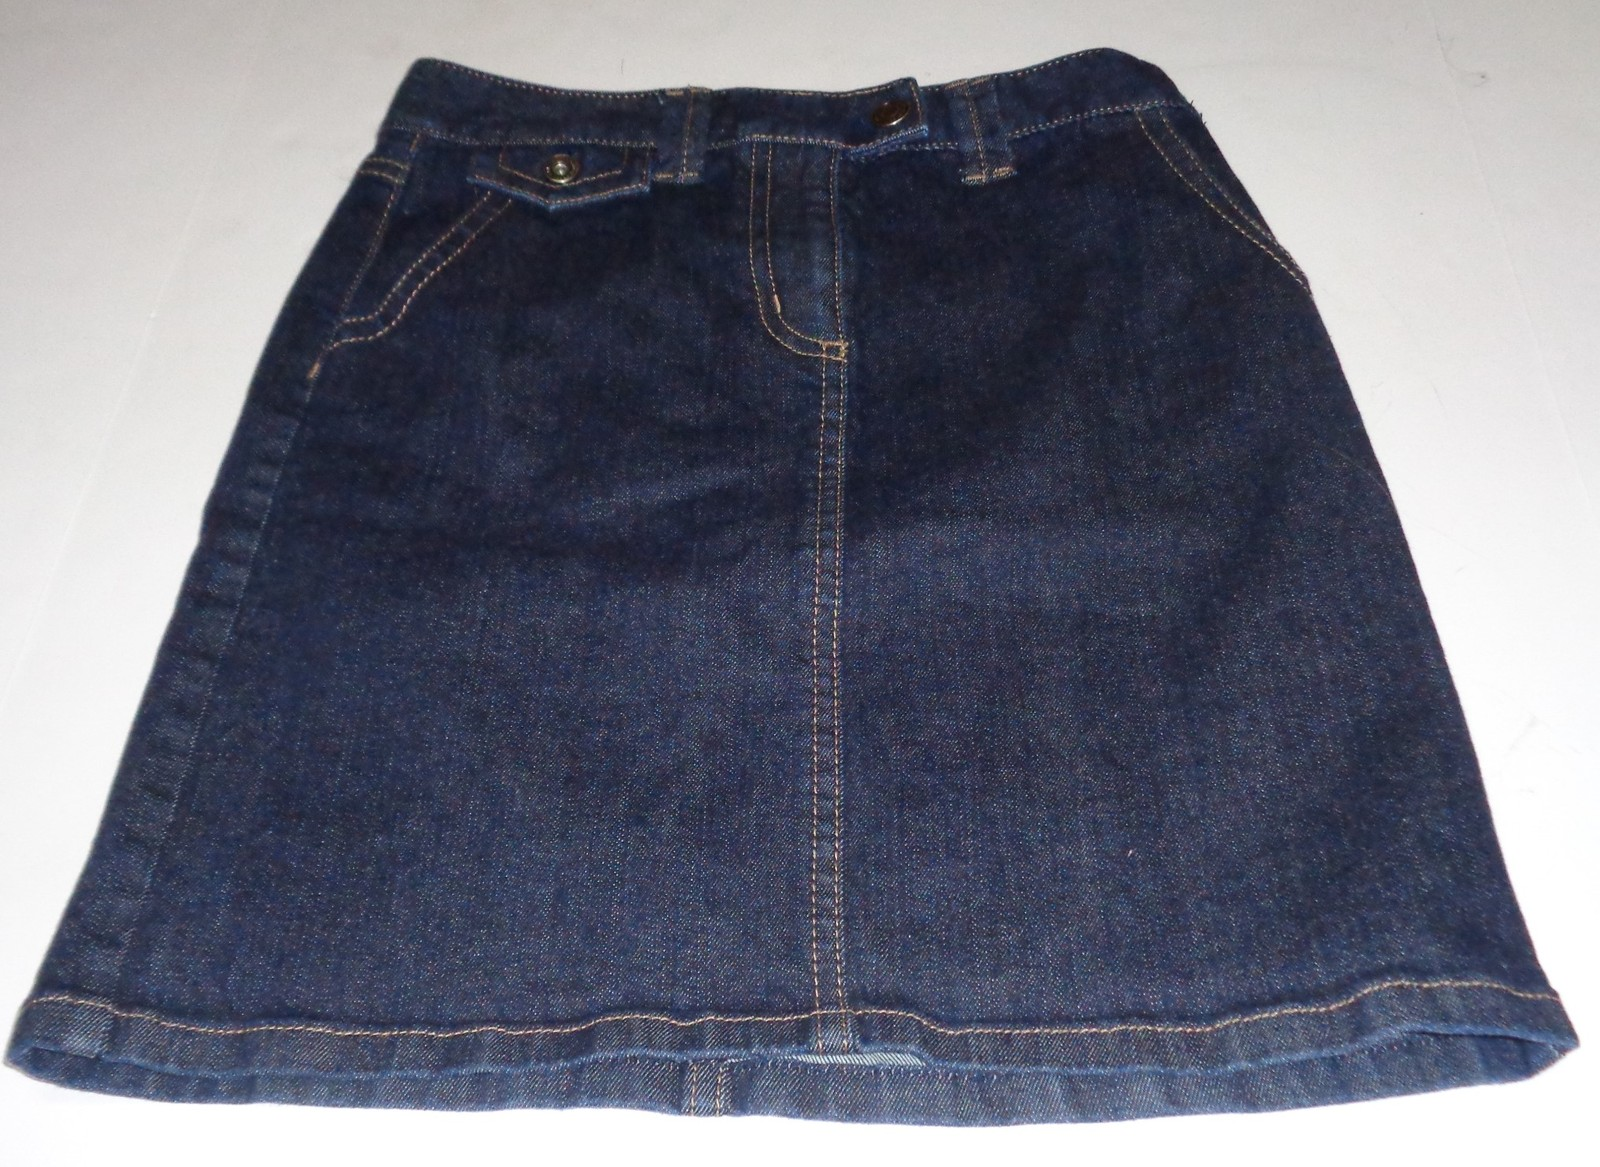 Ann Taylor Dark Blue Jean Skirt Sz 6 NEW Ladies